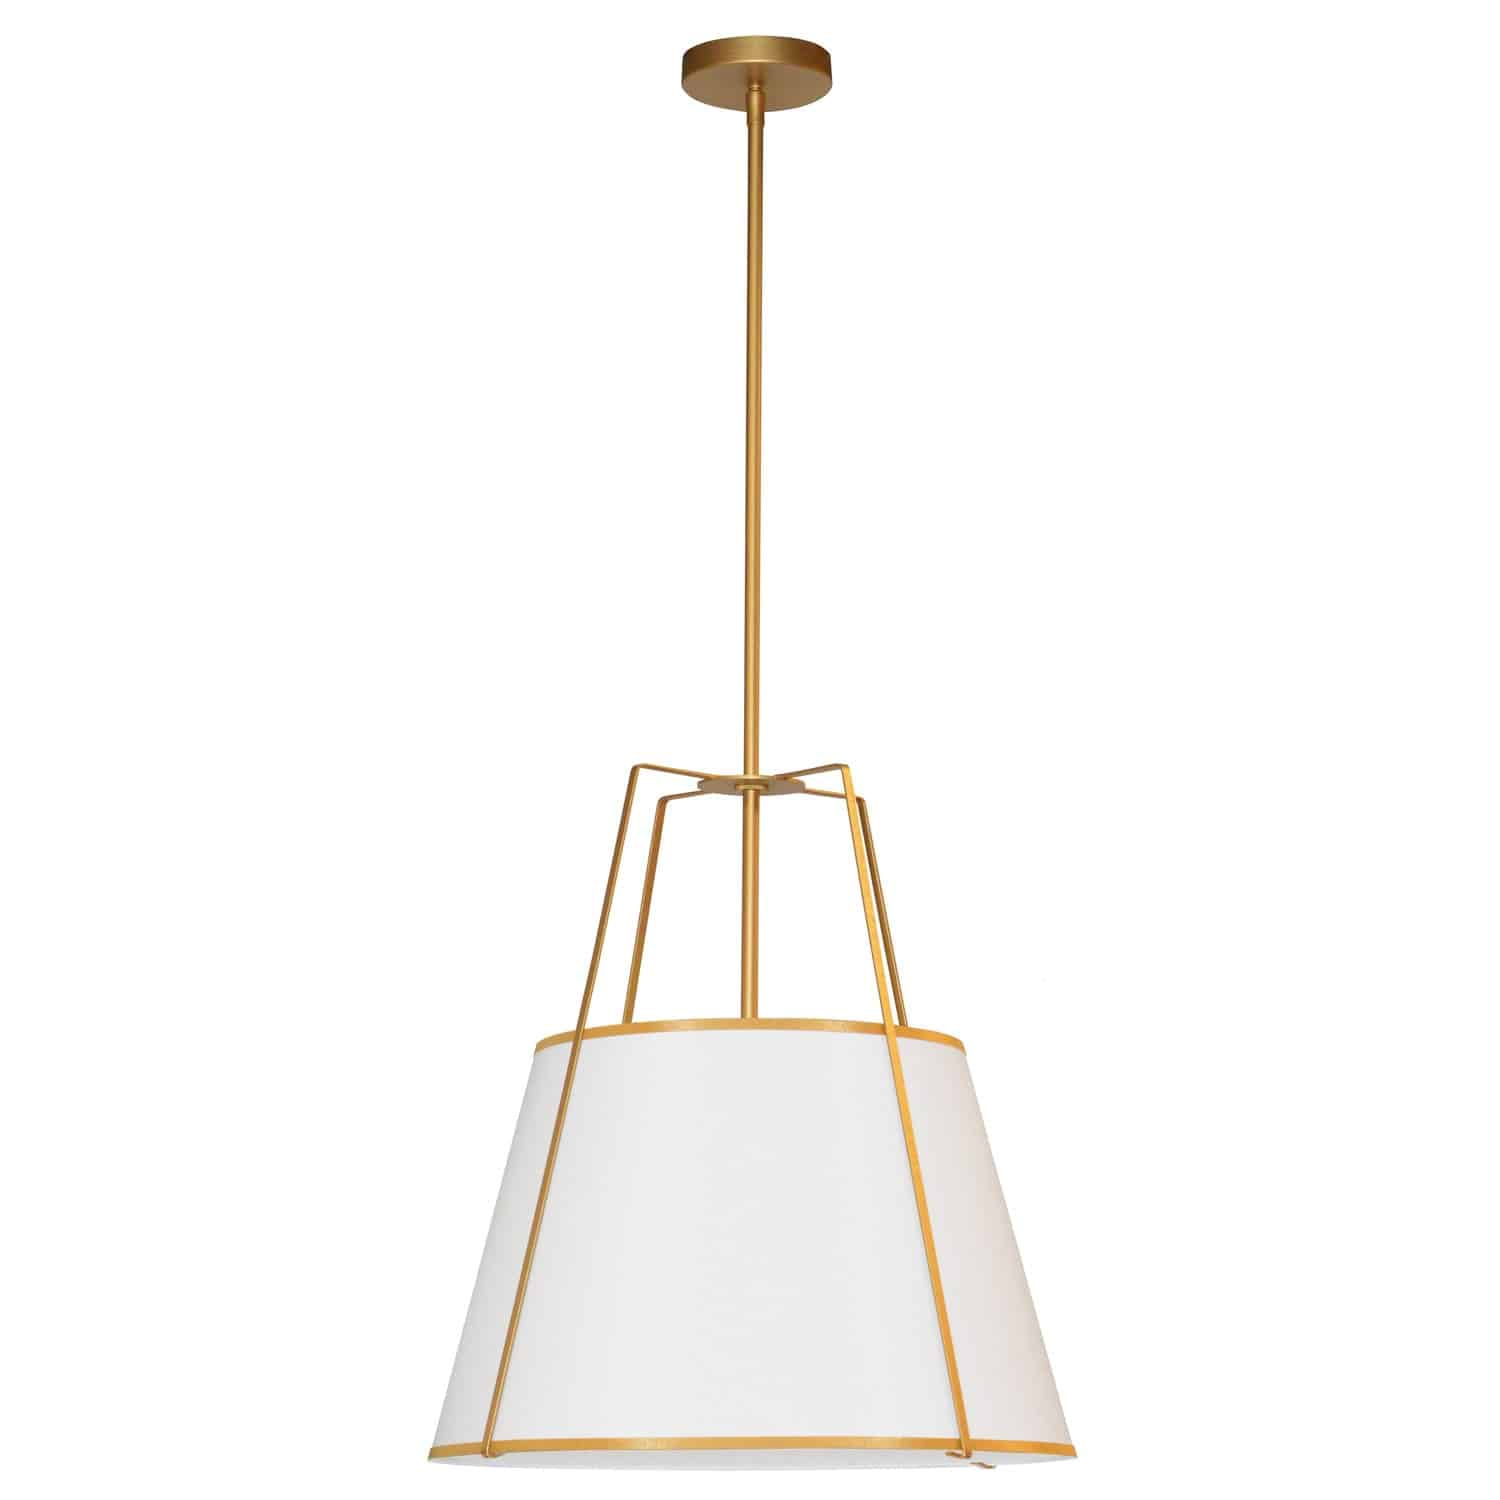 3 Light Incandescent Pendant Gold with White Shade